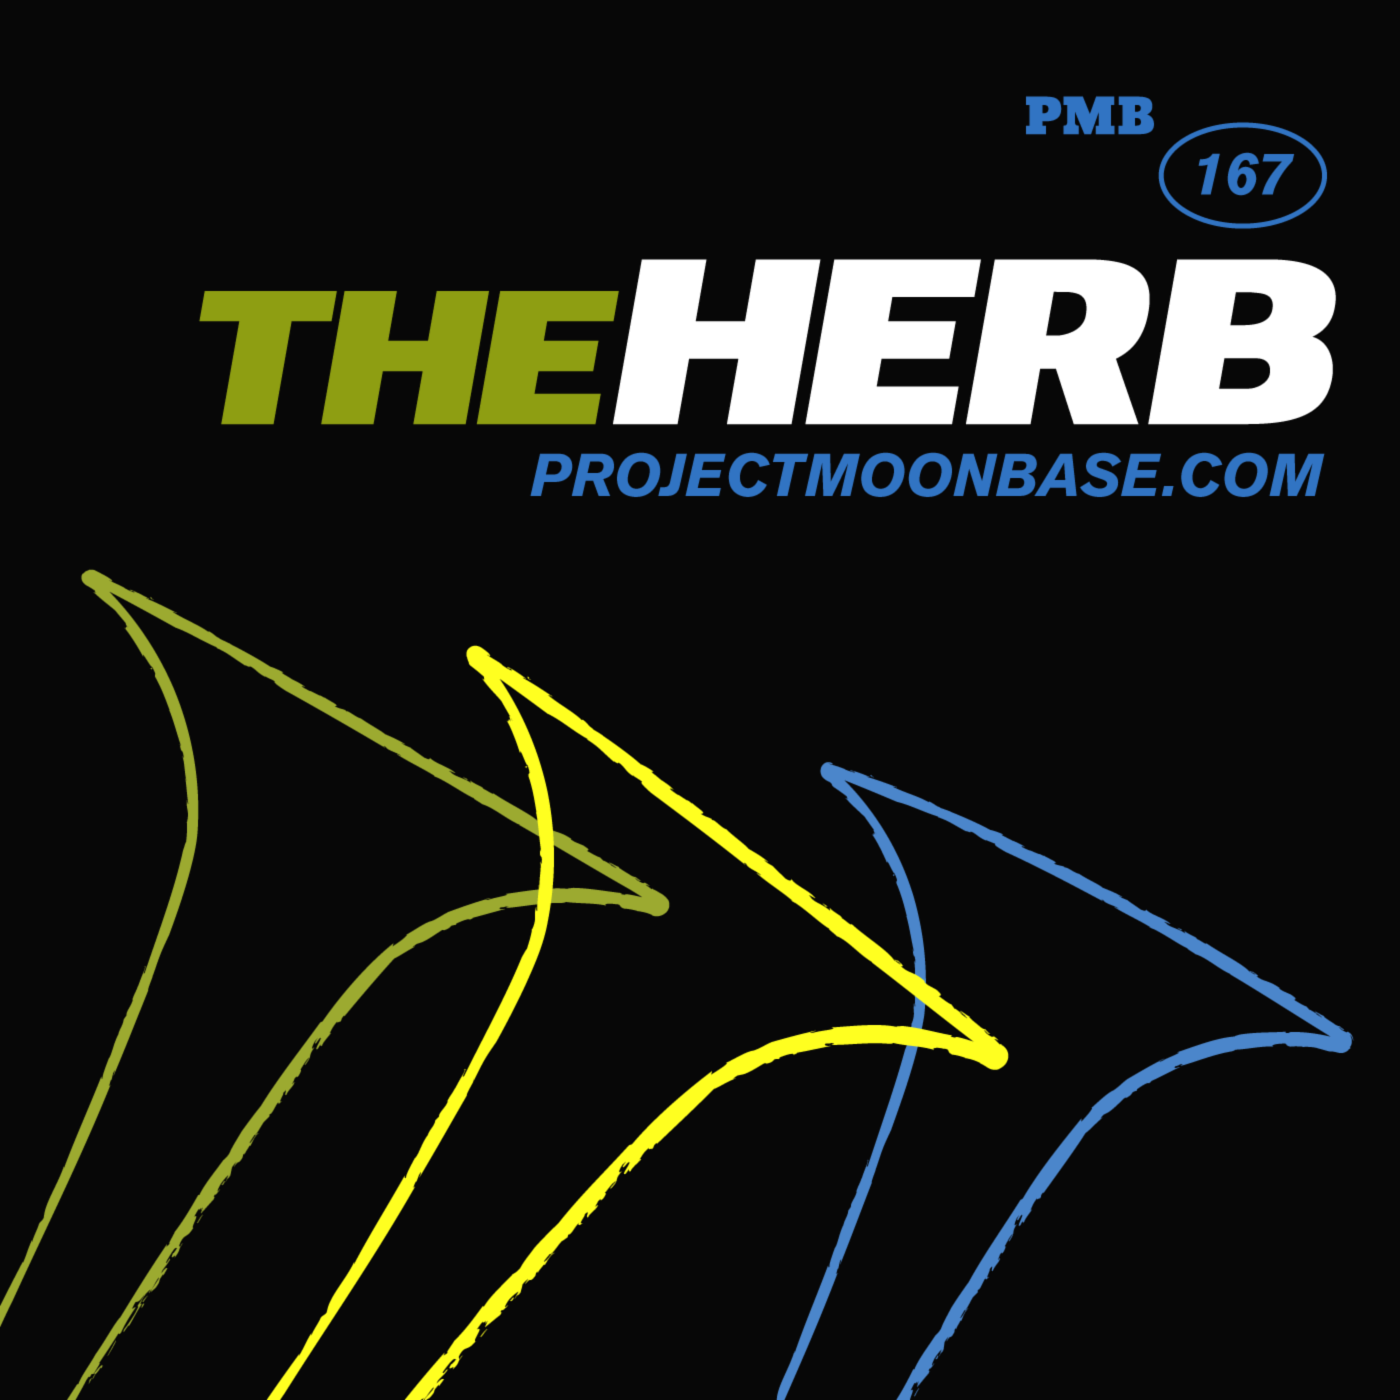 PMB167 The Herb